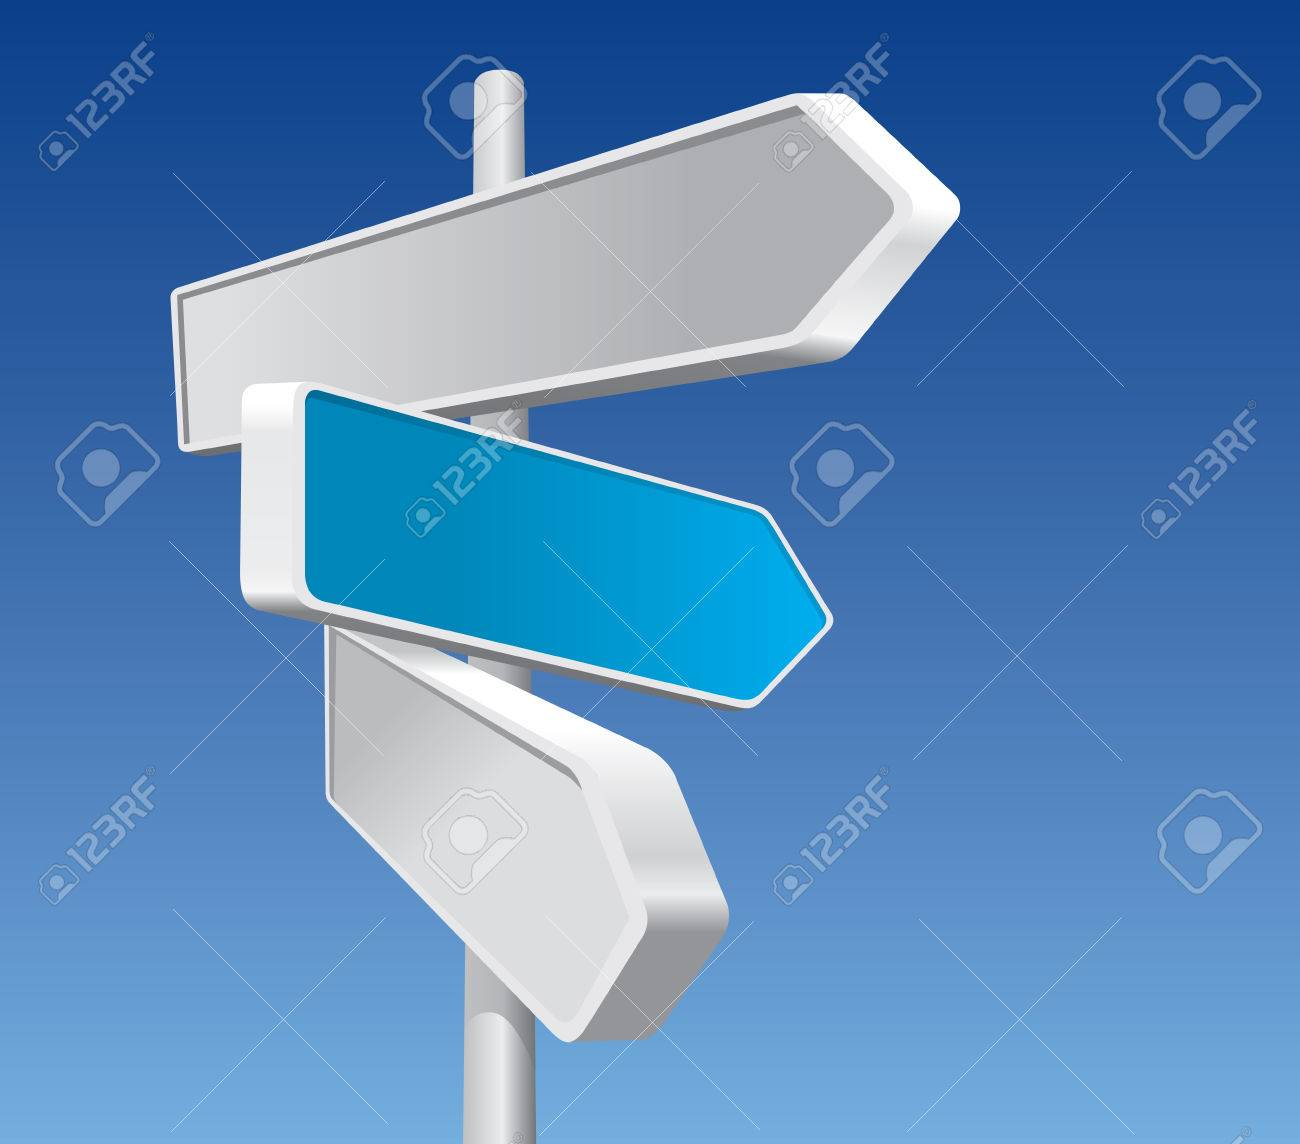 Directional Signs In Business Colors Stock Vector - 5156535